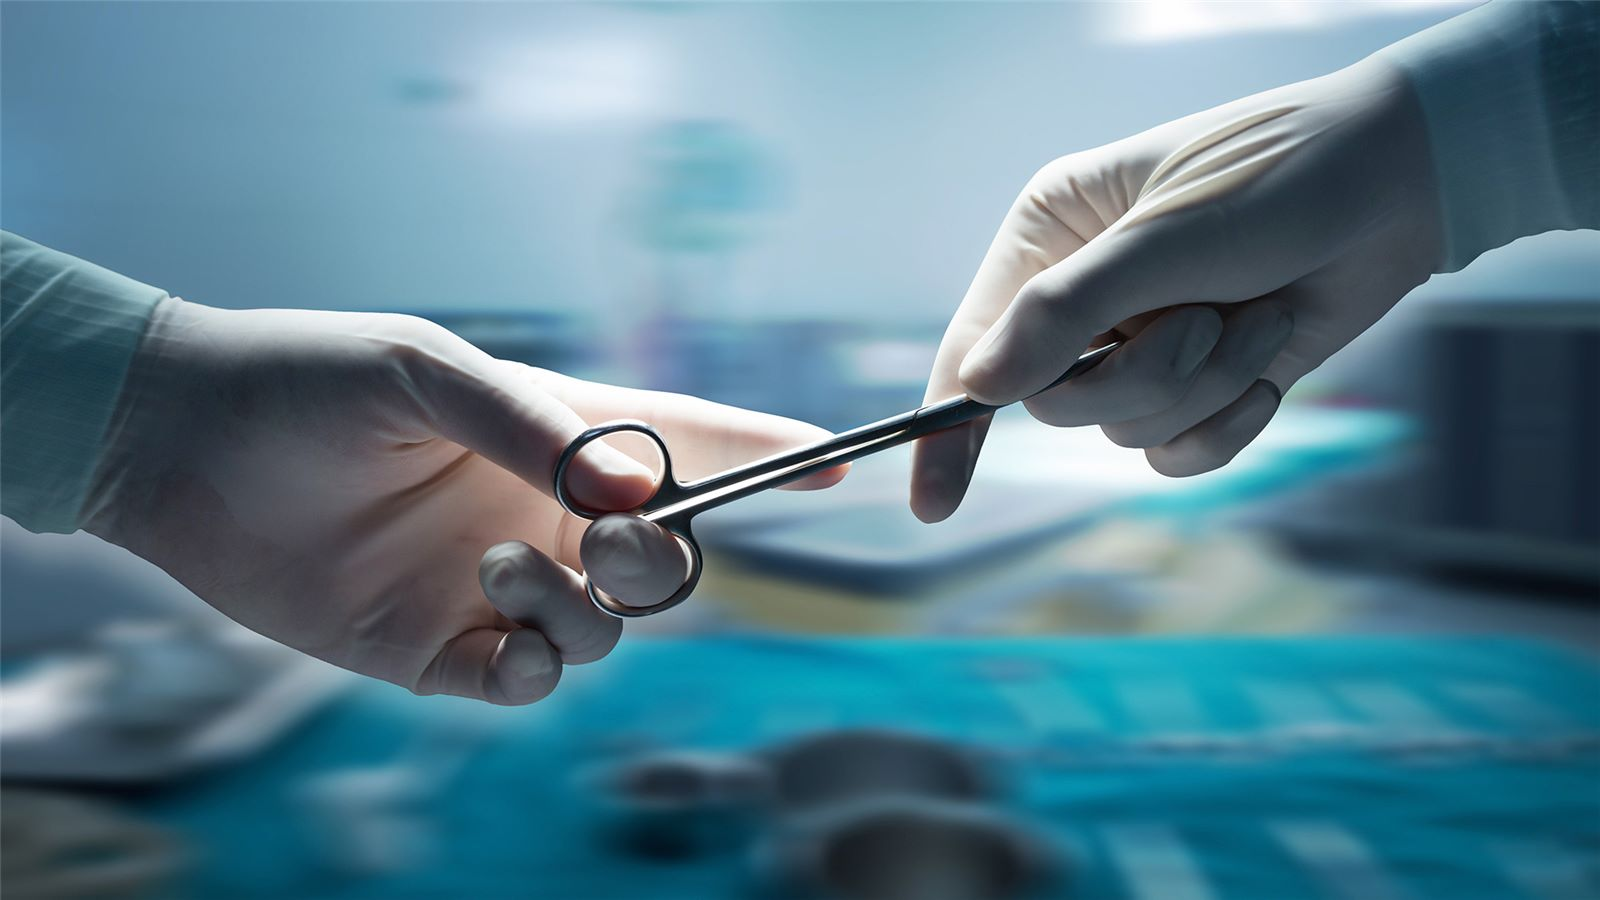 Surgical clamp in operating theatre